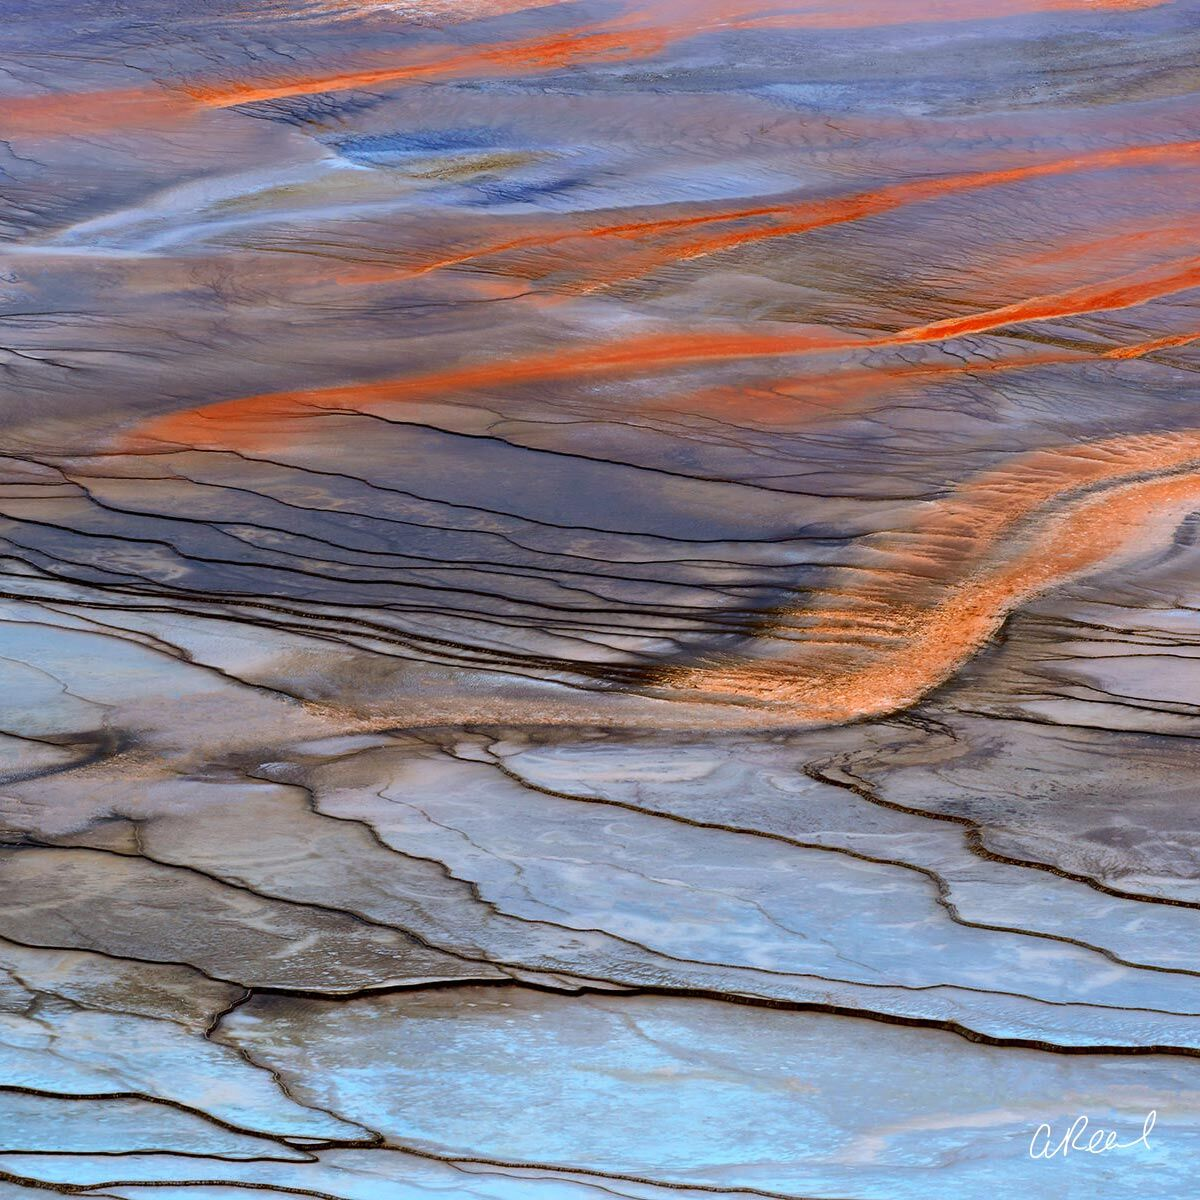 A fine art photograph of a geothermal spring in Yellowstone National Park titled Painted With Fire.